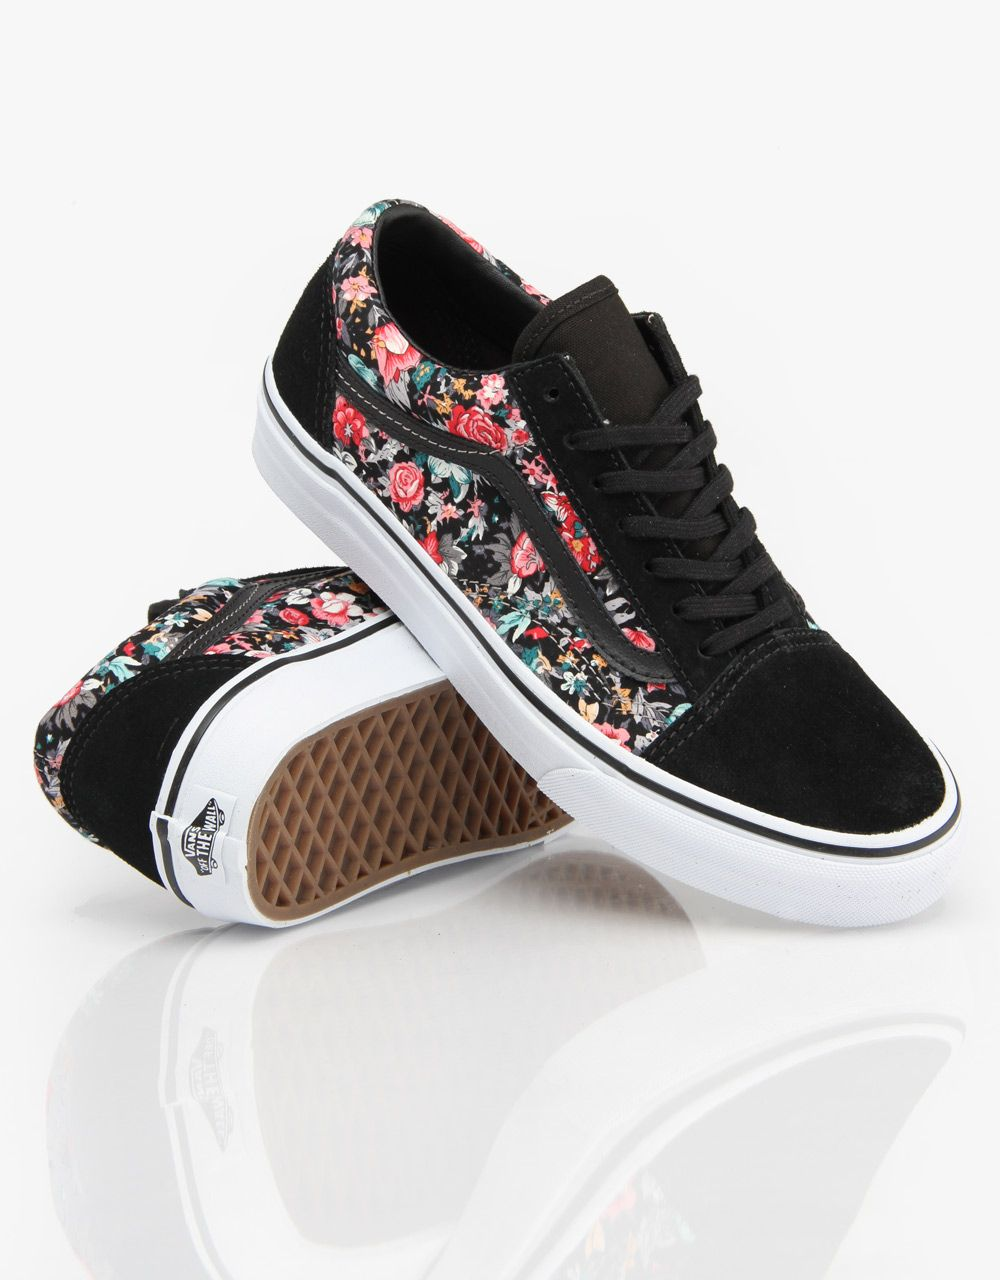 545a5486de Vans Old Skool Girls Skate Shoes - Multi Floral Black True White -  RouteOne.co.uk